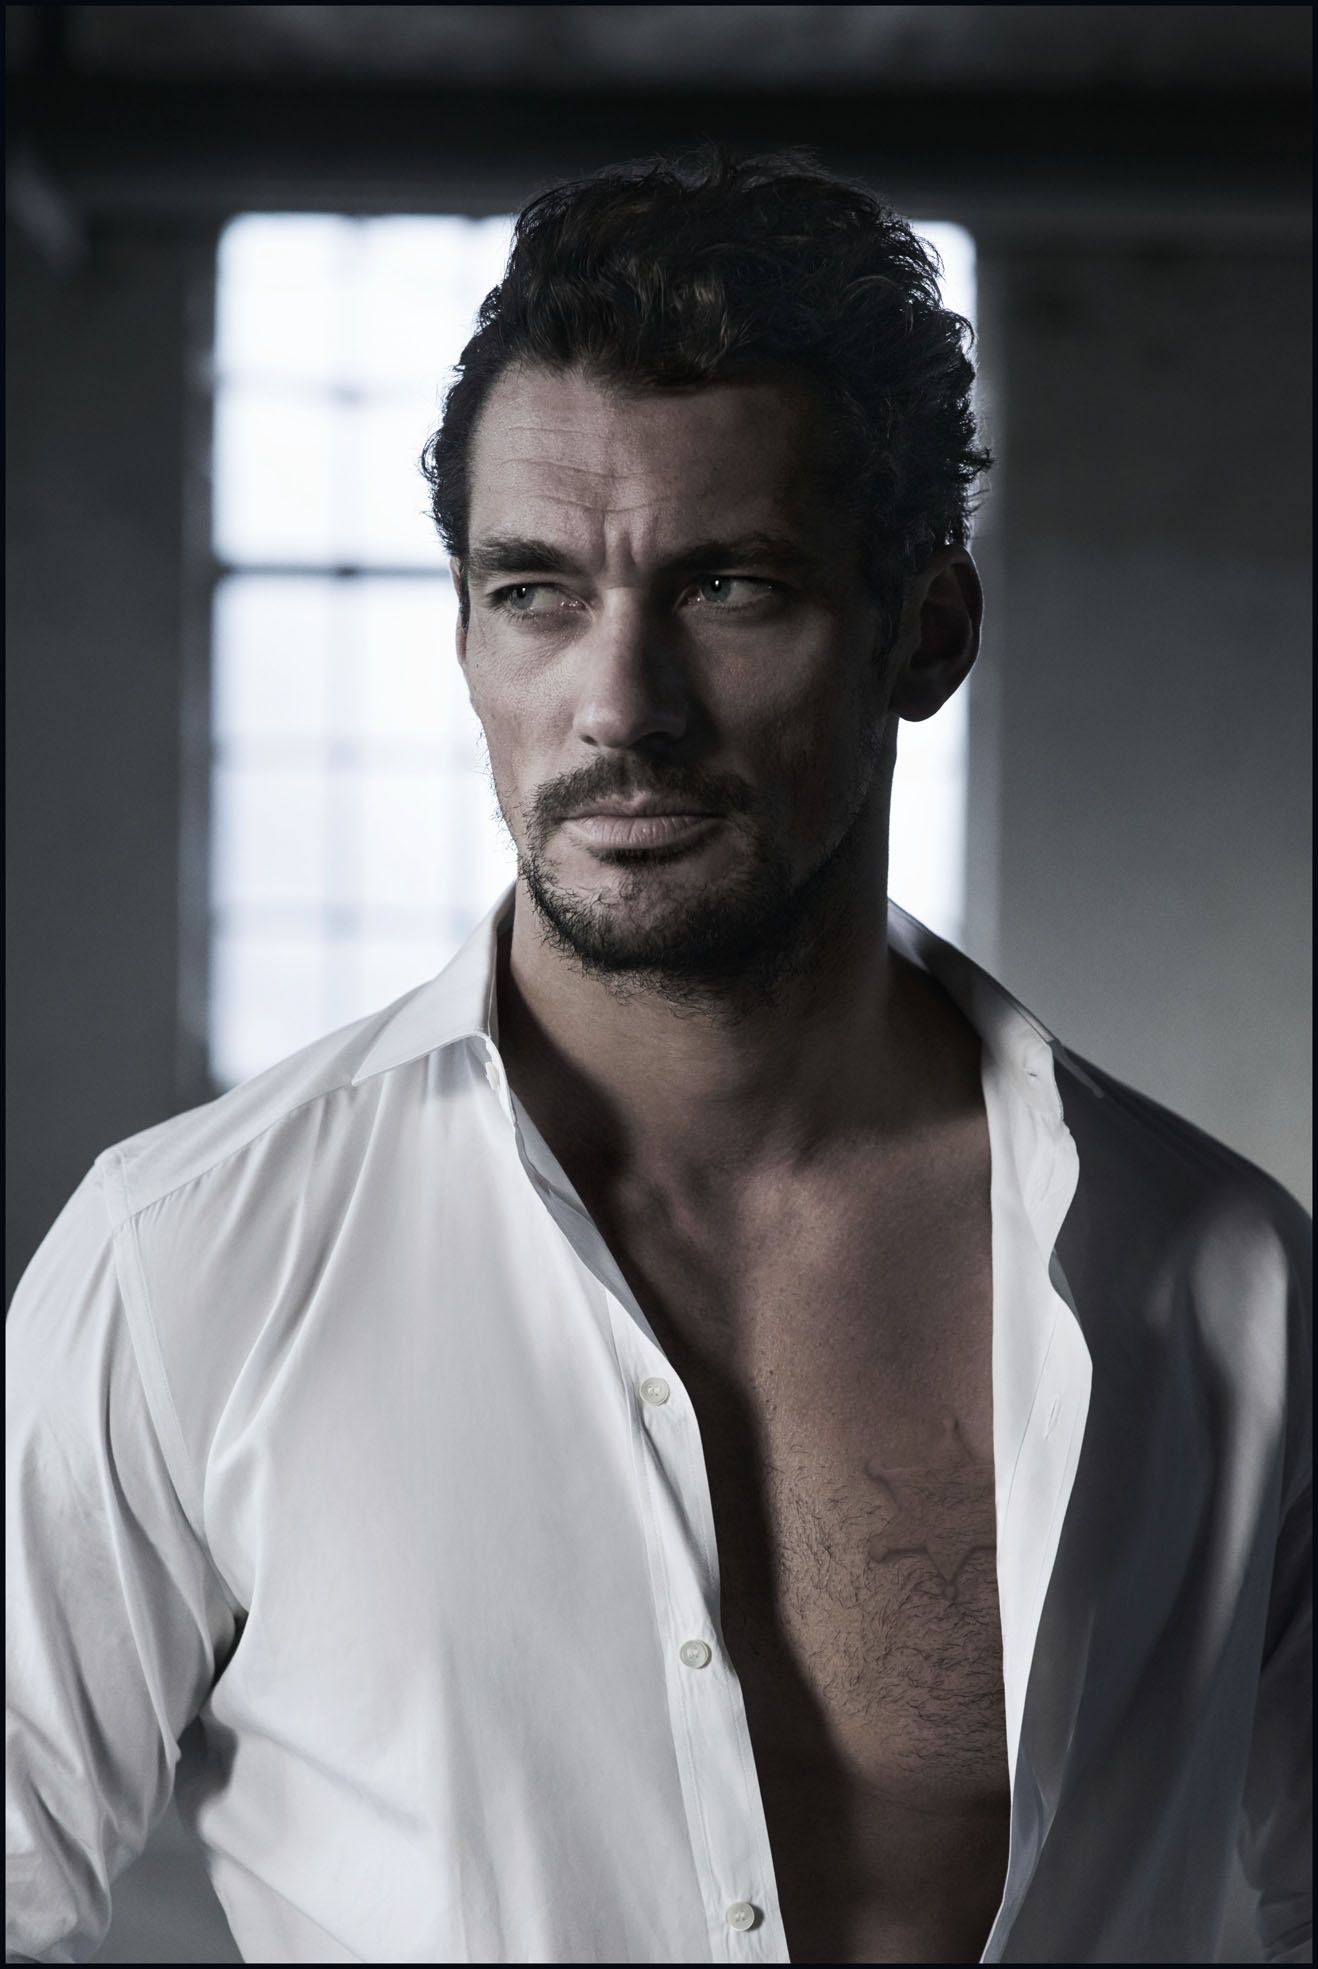 david gandy by dolce & gabbanadavid gandy young, david gandy 2017, david gandy gif, david gandy instagram, david gandy style, david gandy биография, david gandy for autograph, david gandy vk, david gandy tumblr, david gandy photo, david gandy glasses, david gandy фото, david gandy wiki, david gandy by dolce & gabbana, david gandy haircut, david gandy model, david gandy suit, david gandy diet, david gandy street style, david gandy official